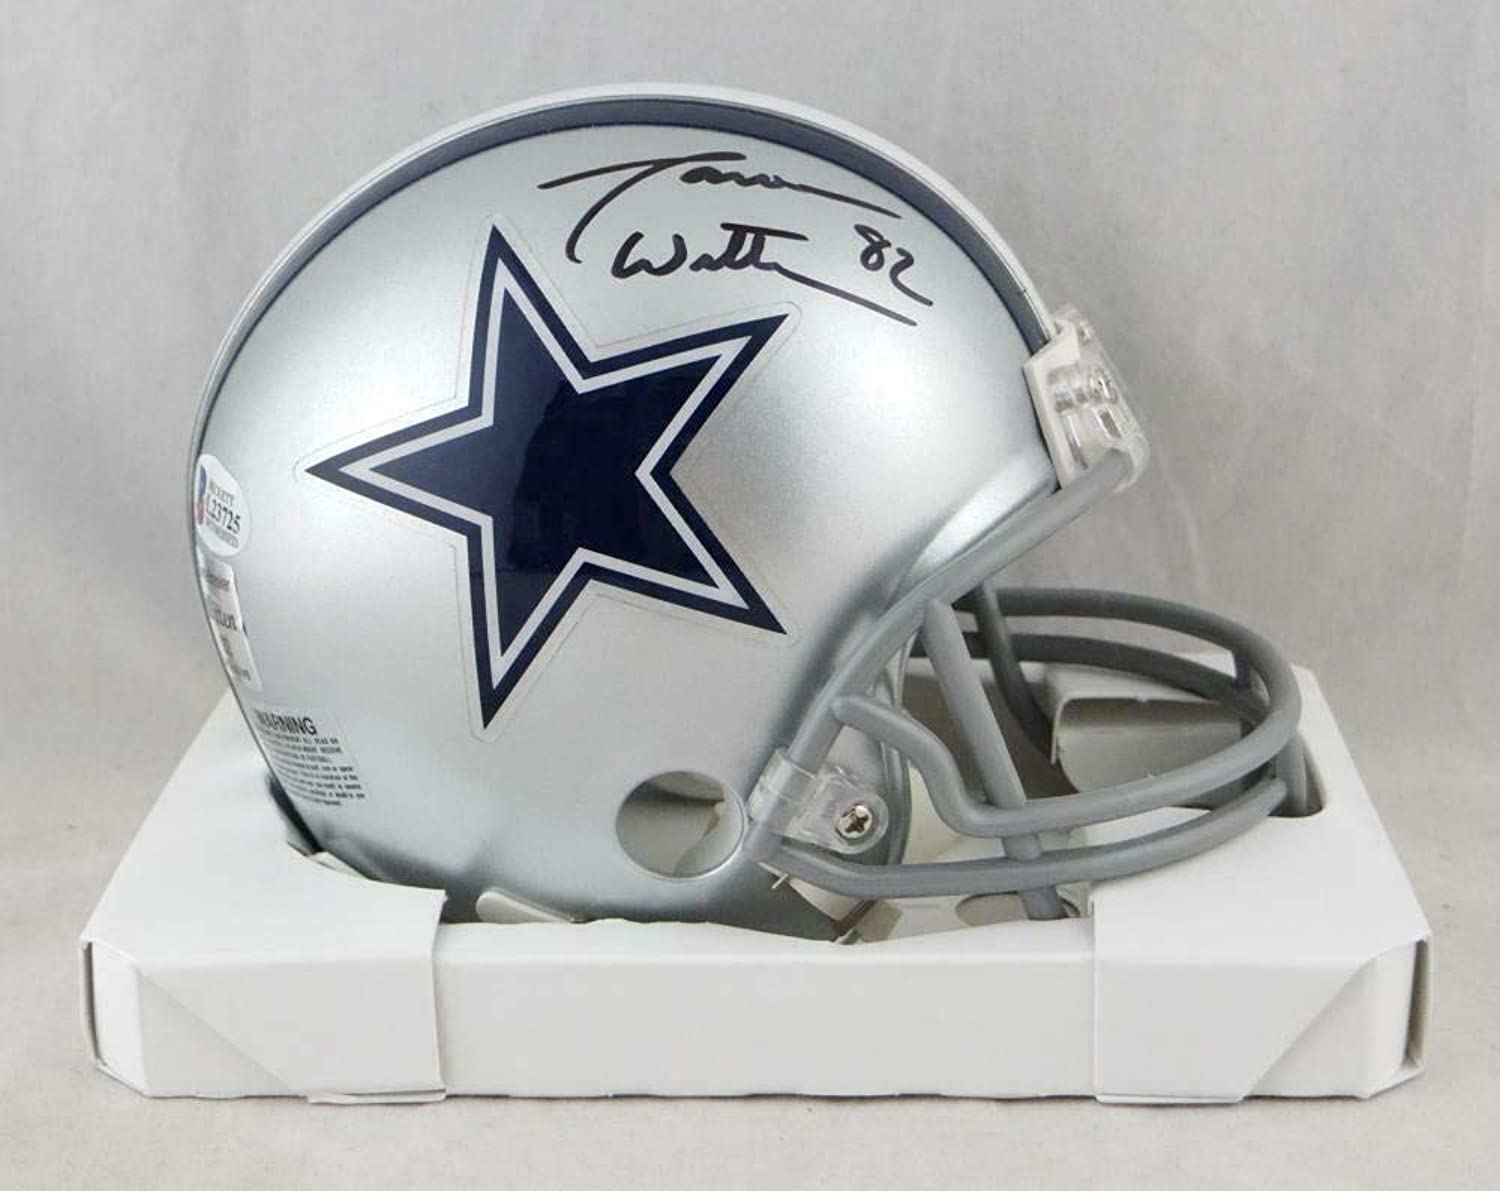 Jason Witten Signed Mini Helmet  Beckett Auth Black  Beckett Authentication  Autographed NFL Mini Helmets